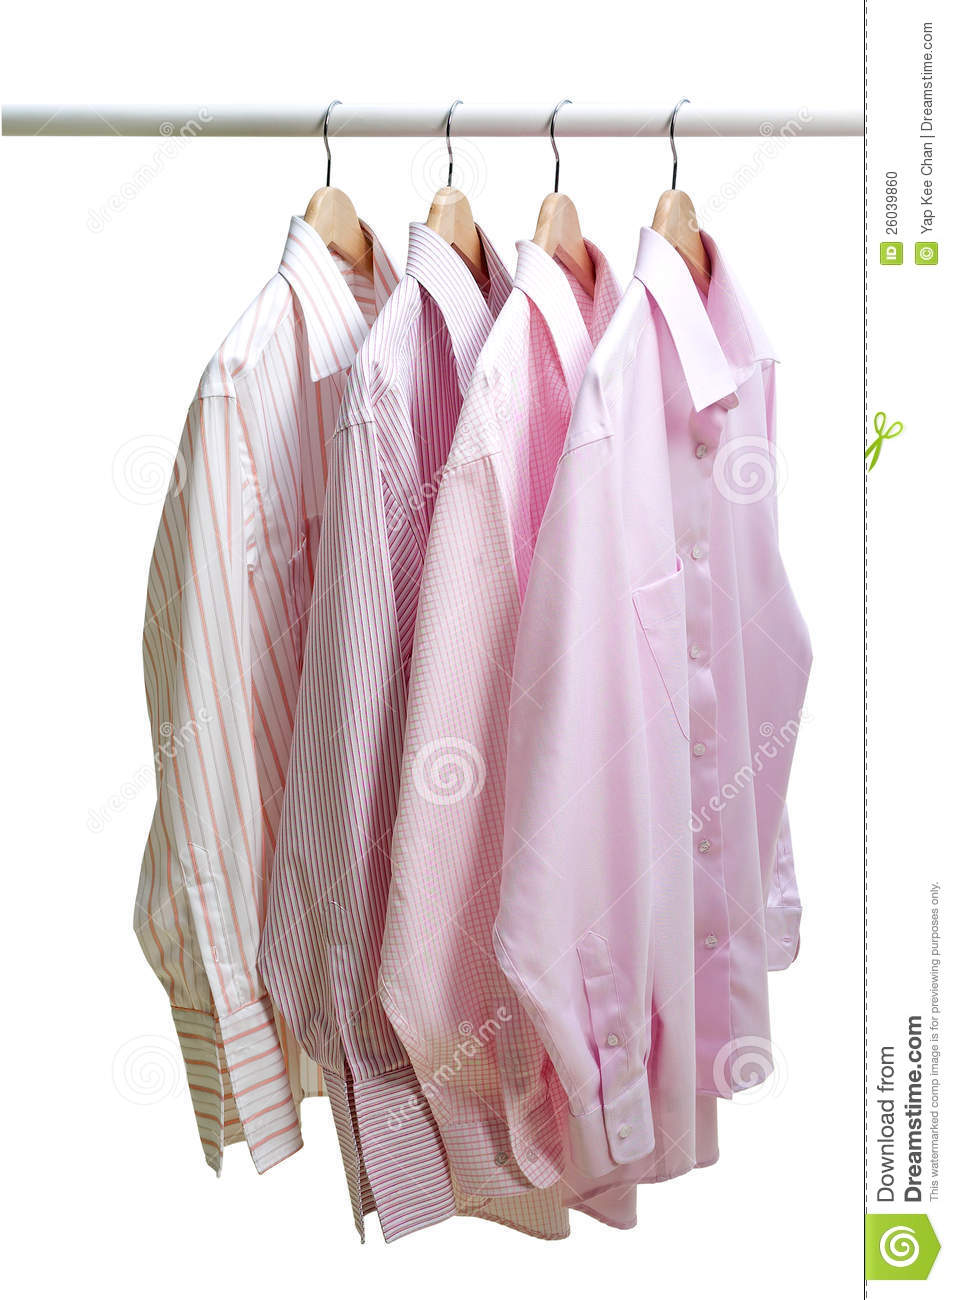 More similar stock images of ` Hanging clothes `